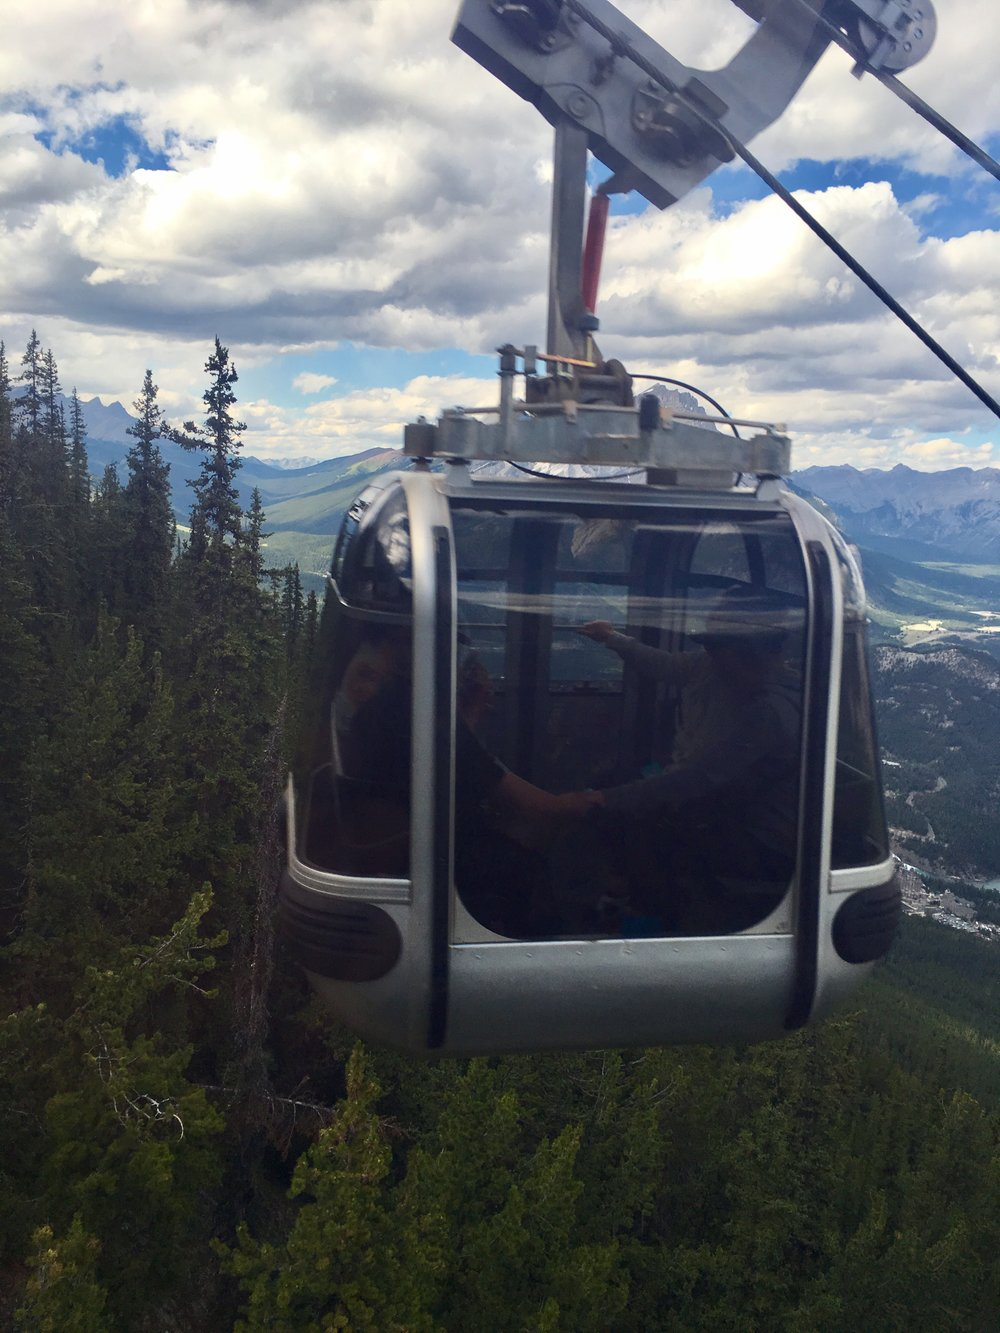 BANFF'S GONDOLA RIDE UP THE SULPHUR MOUNTAIN